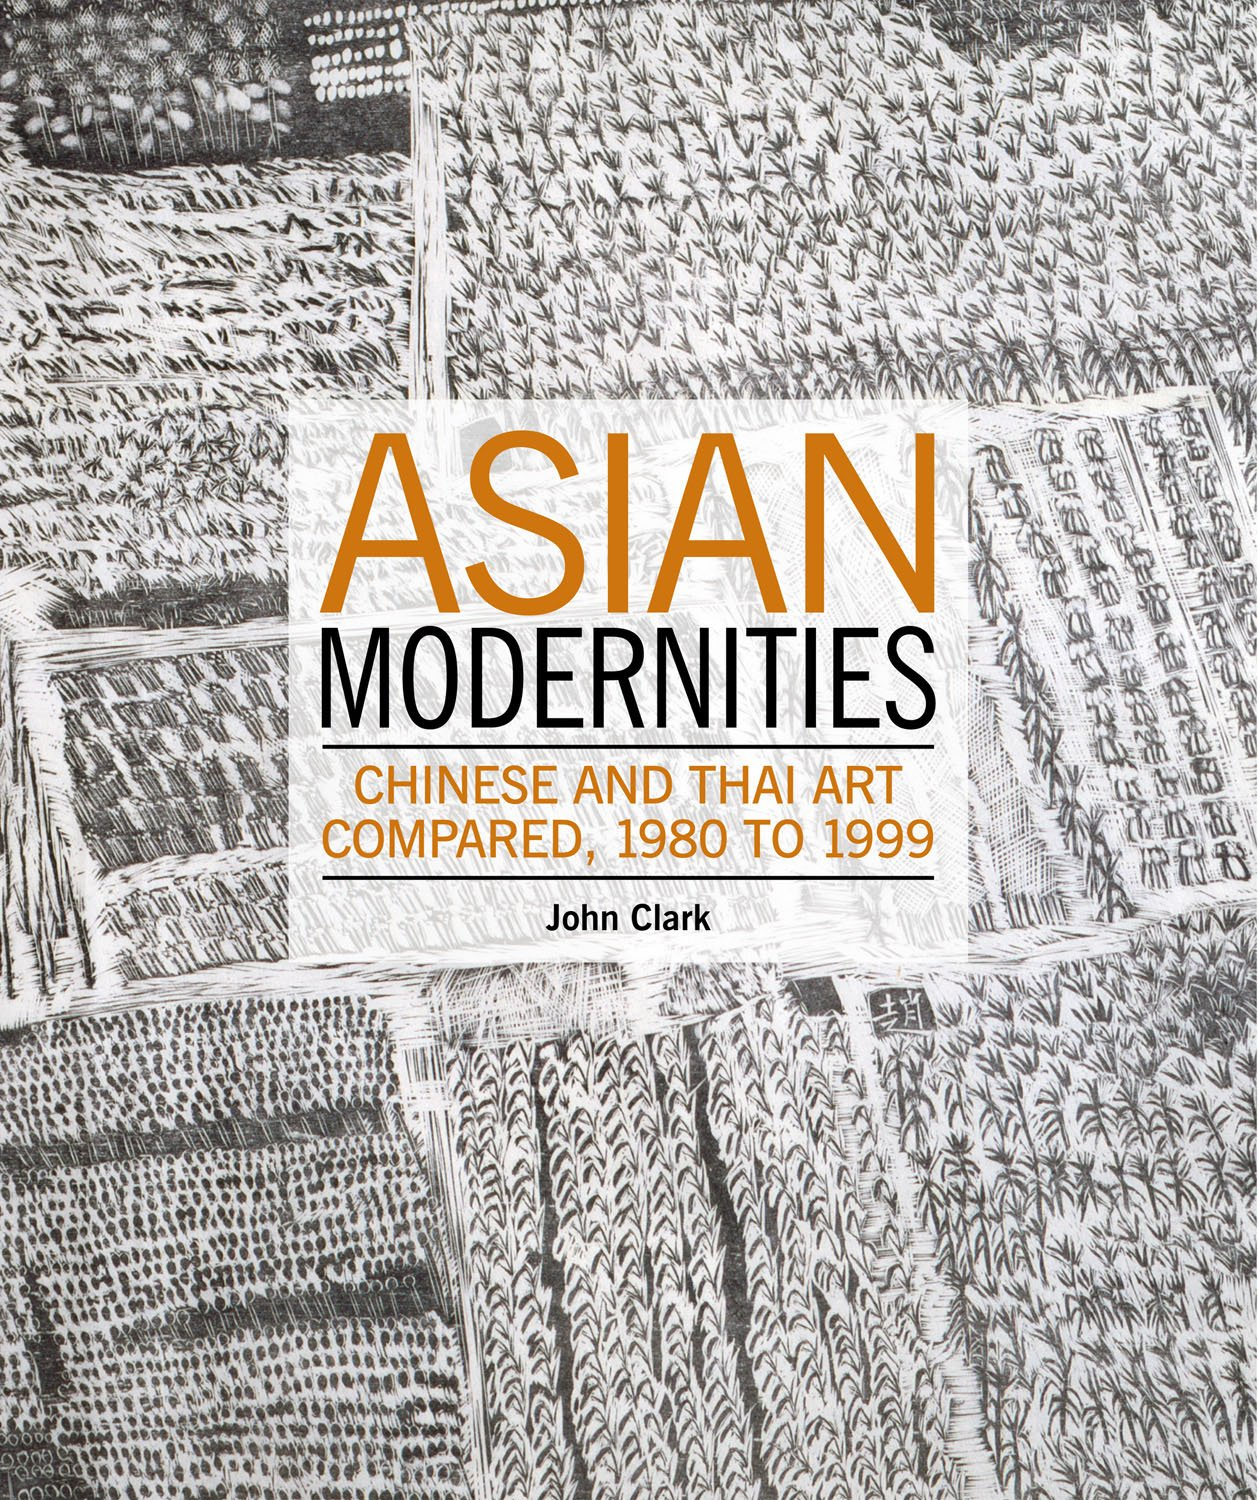 Asian Modernities: Chinese and Thai Art Compared, 1980 to 1999 ebook